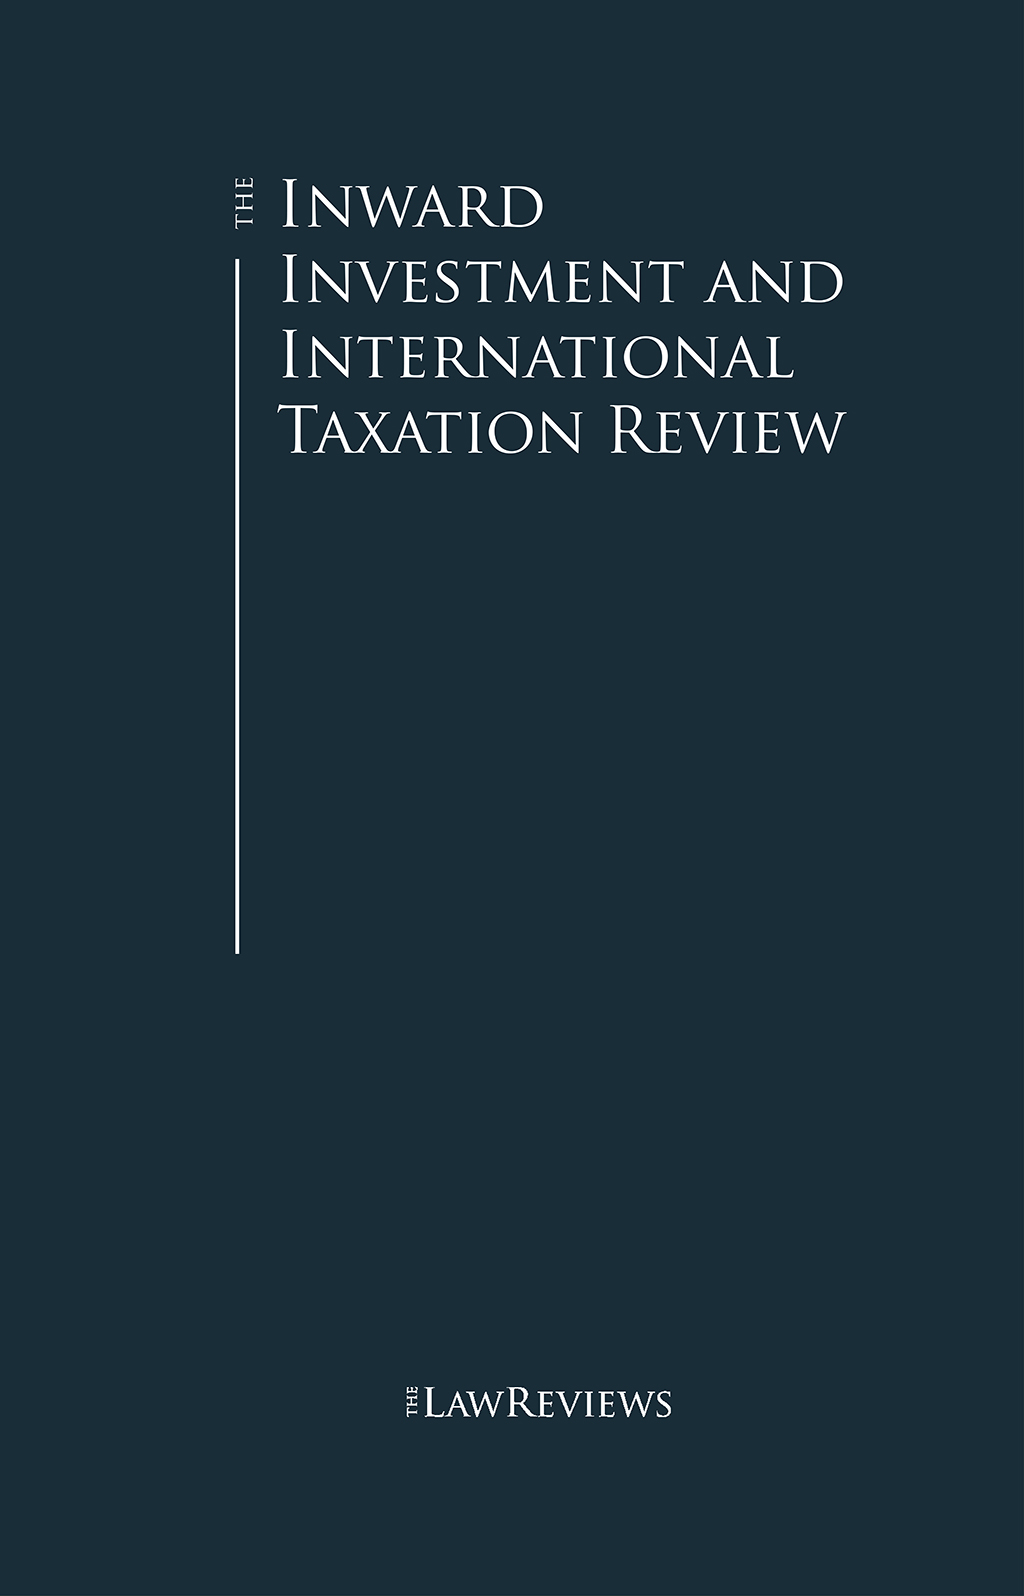 The Inward Investment and International Taxation Review